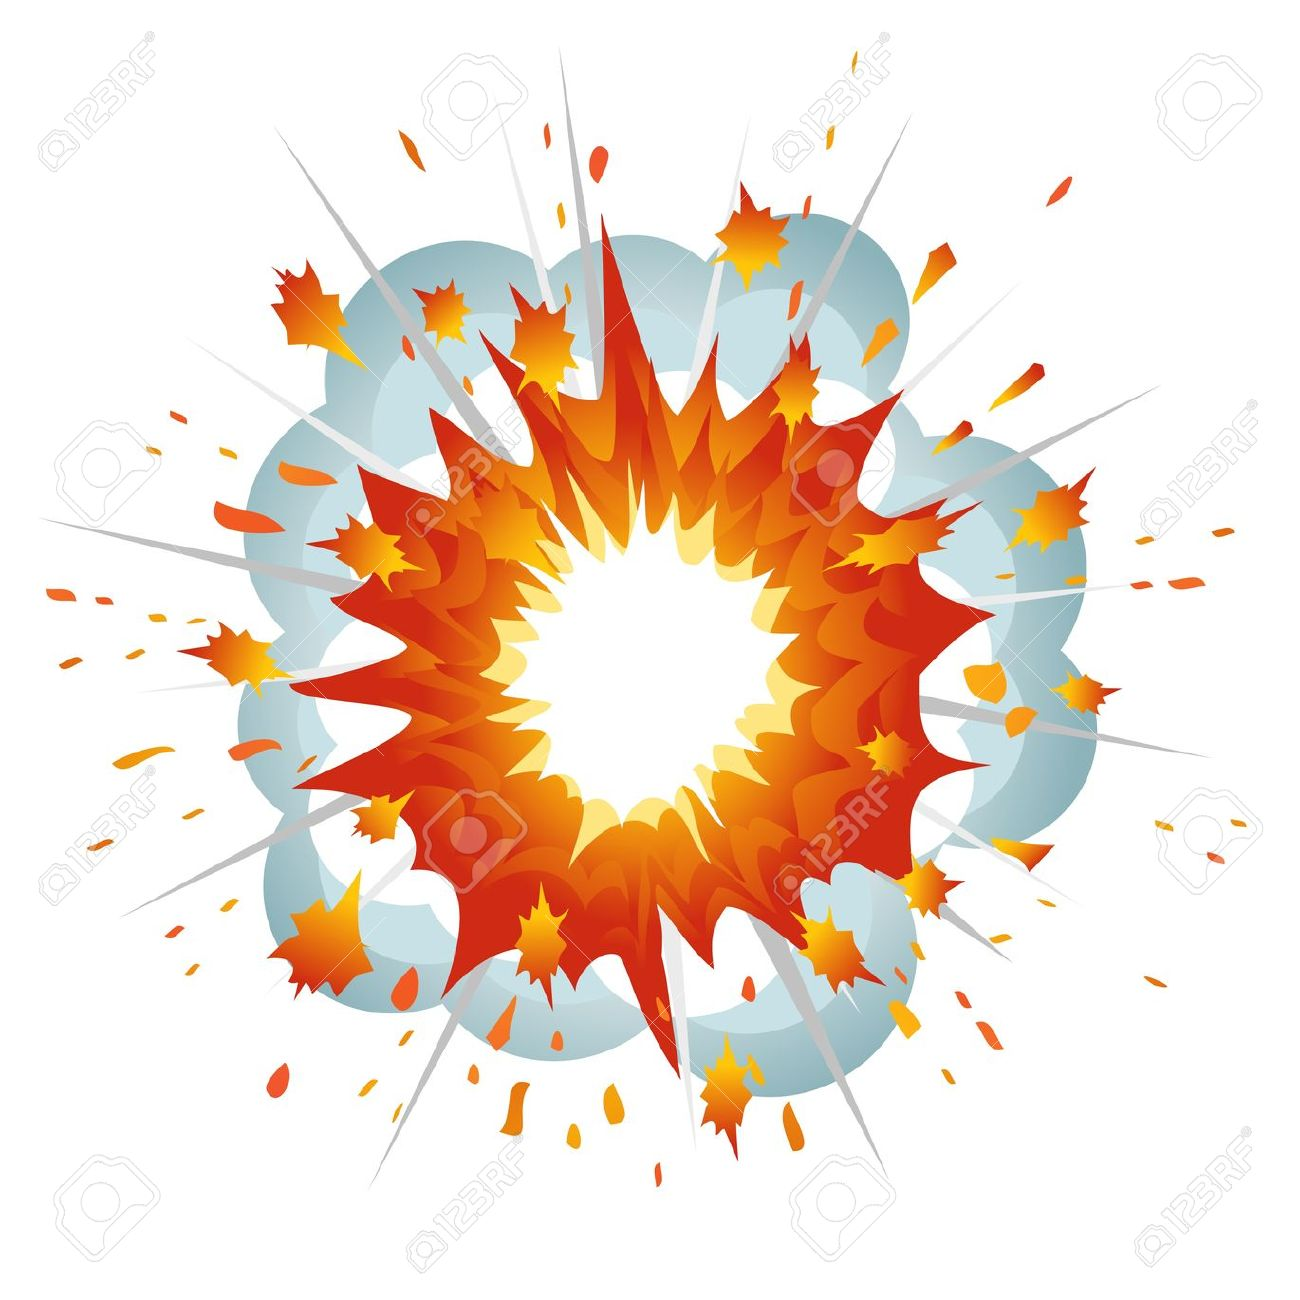 Clipart annimated explosion jpg stock Animated Explosion Clip Art – Clipart Download - Free Clipart jpg stock